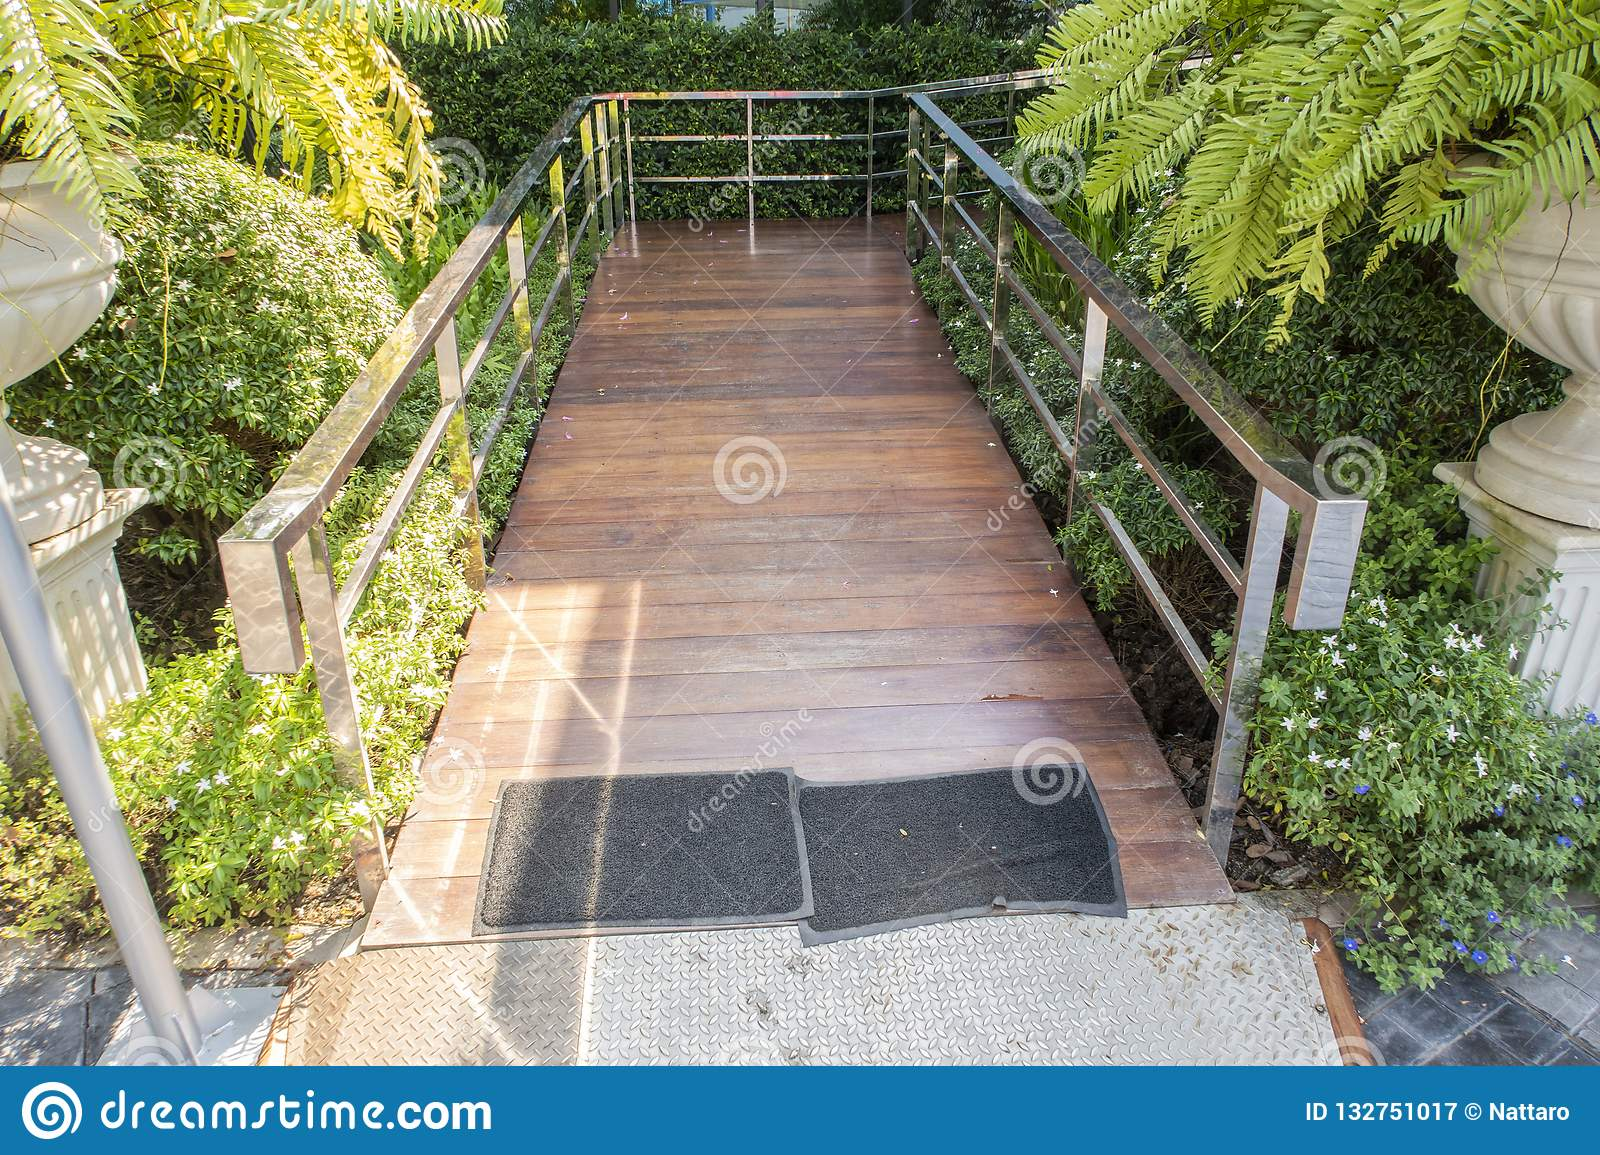 Wooden ramp way for support wheelchair disabled people in to coffee shop.